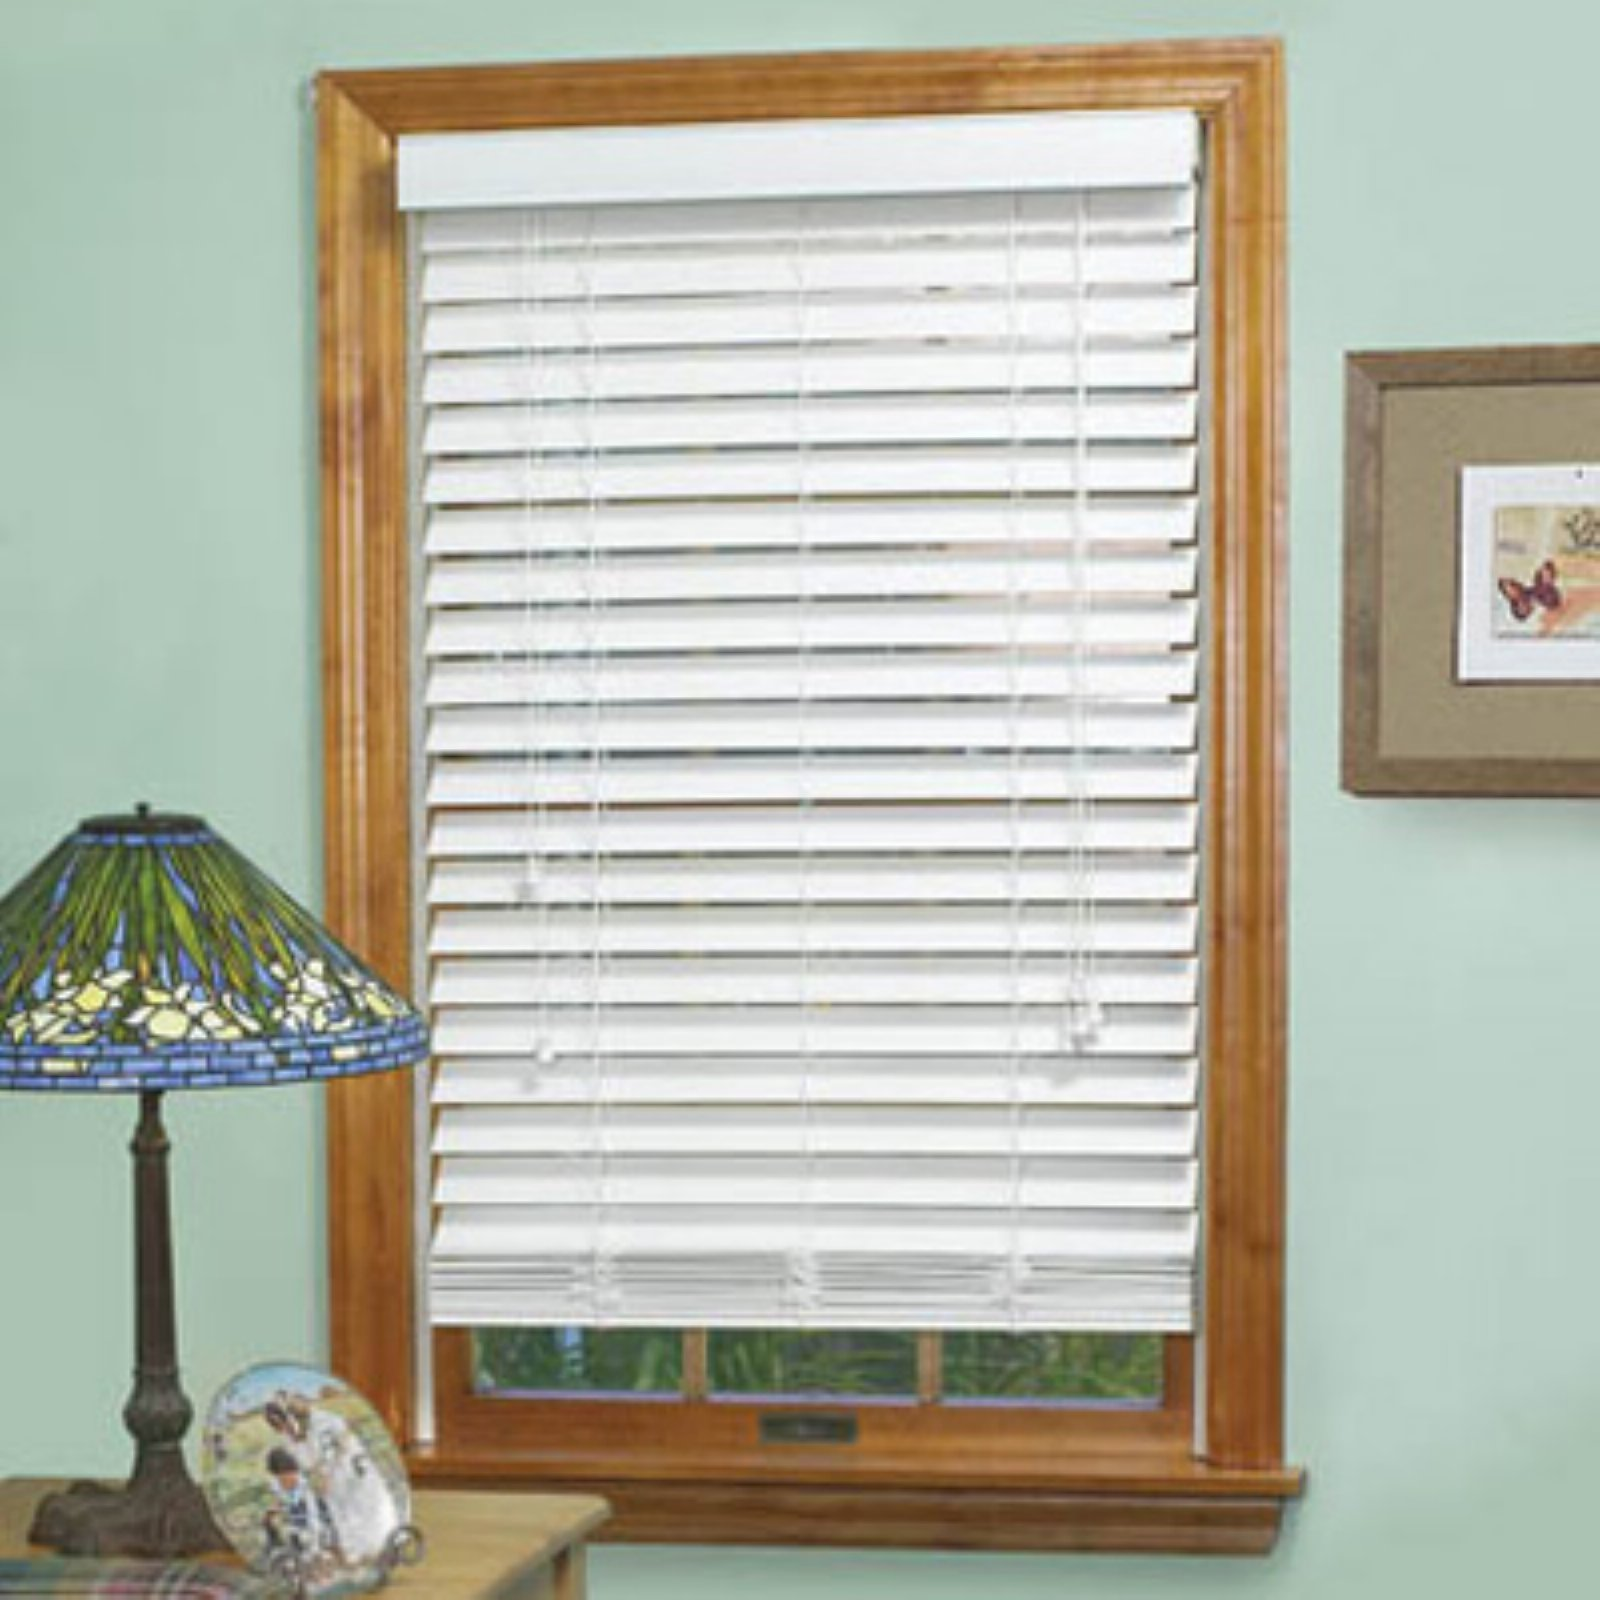 blinds al blind shade cellular shades replacements window mini windows blackout darkening room menards alum